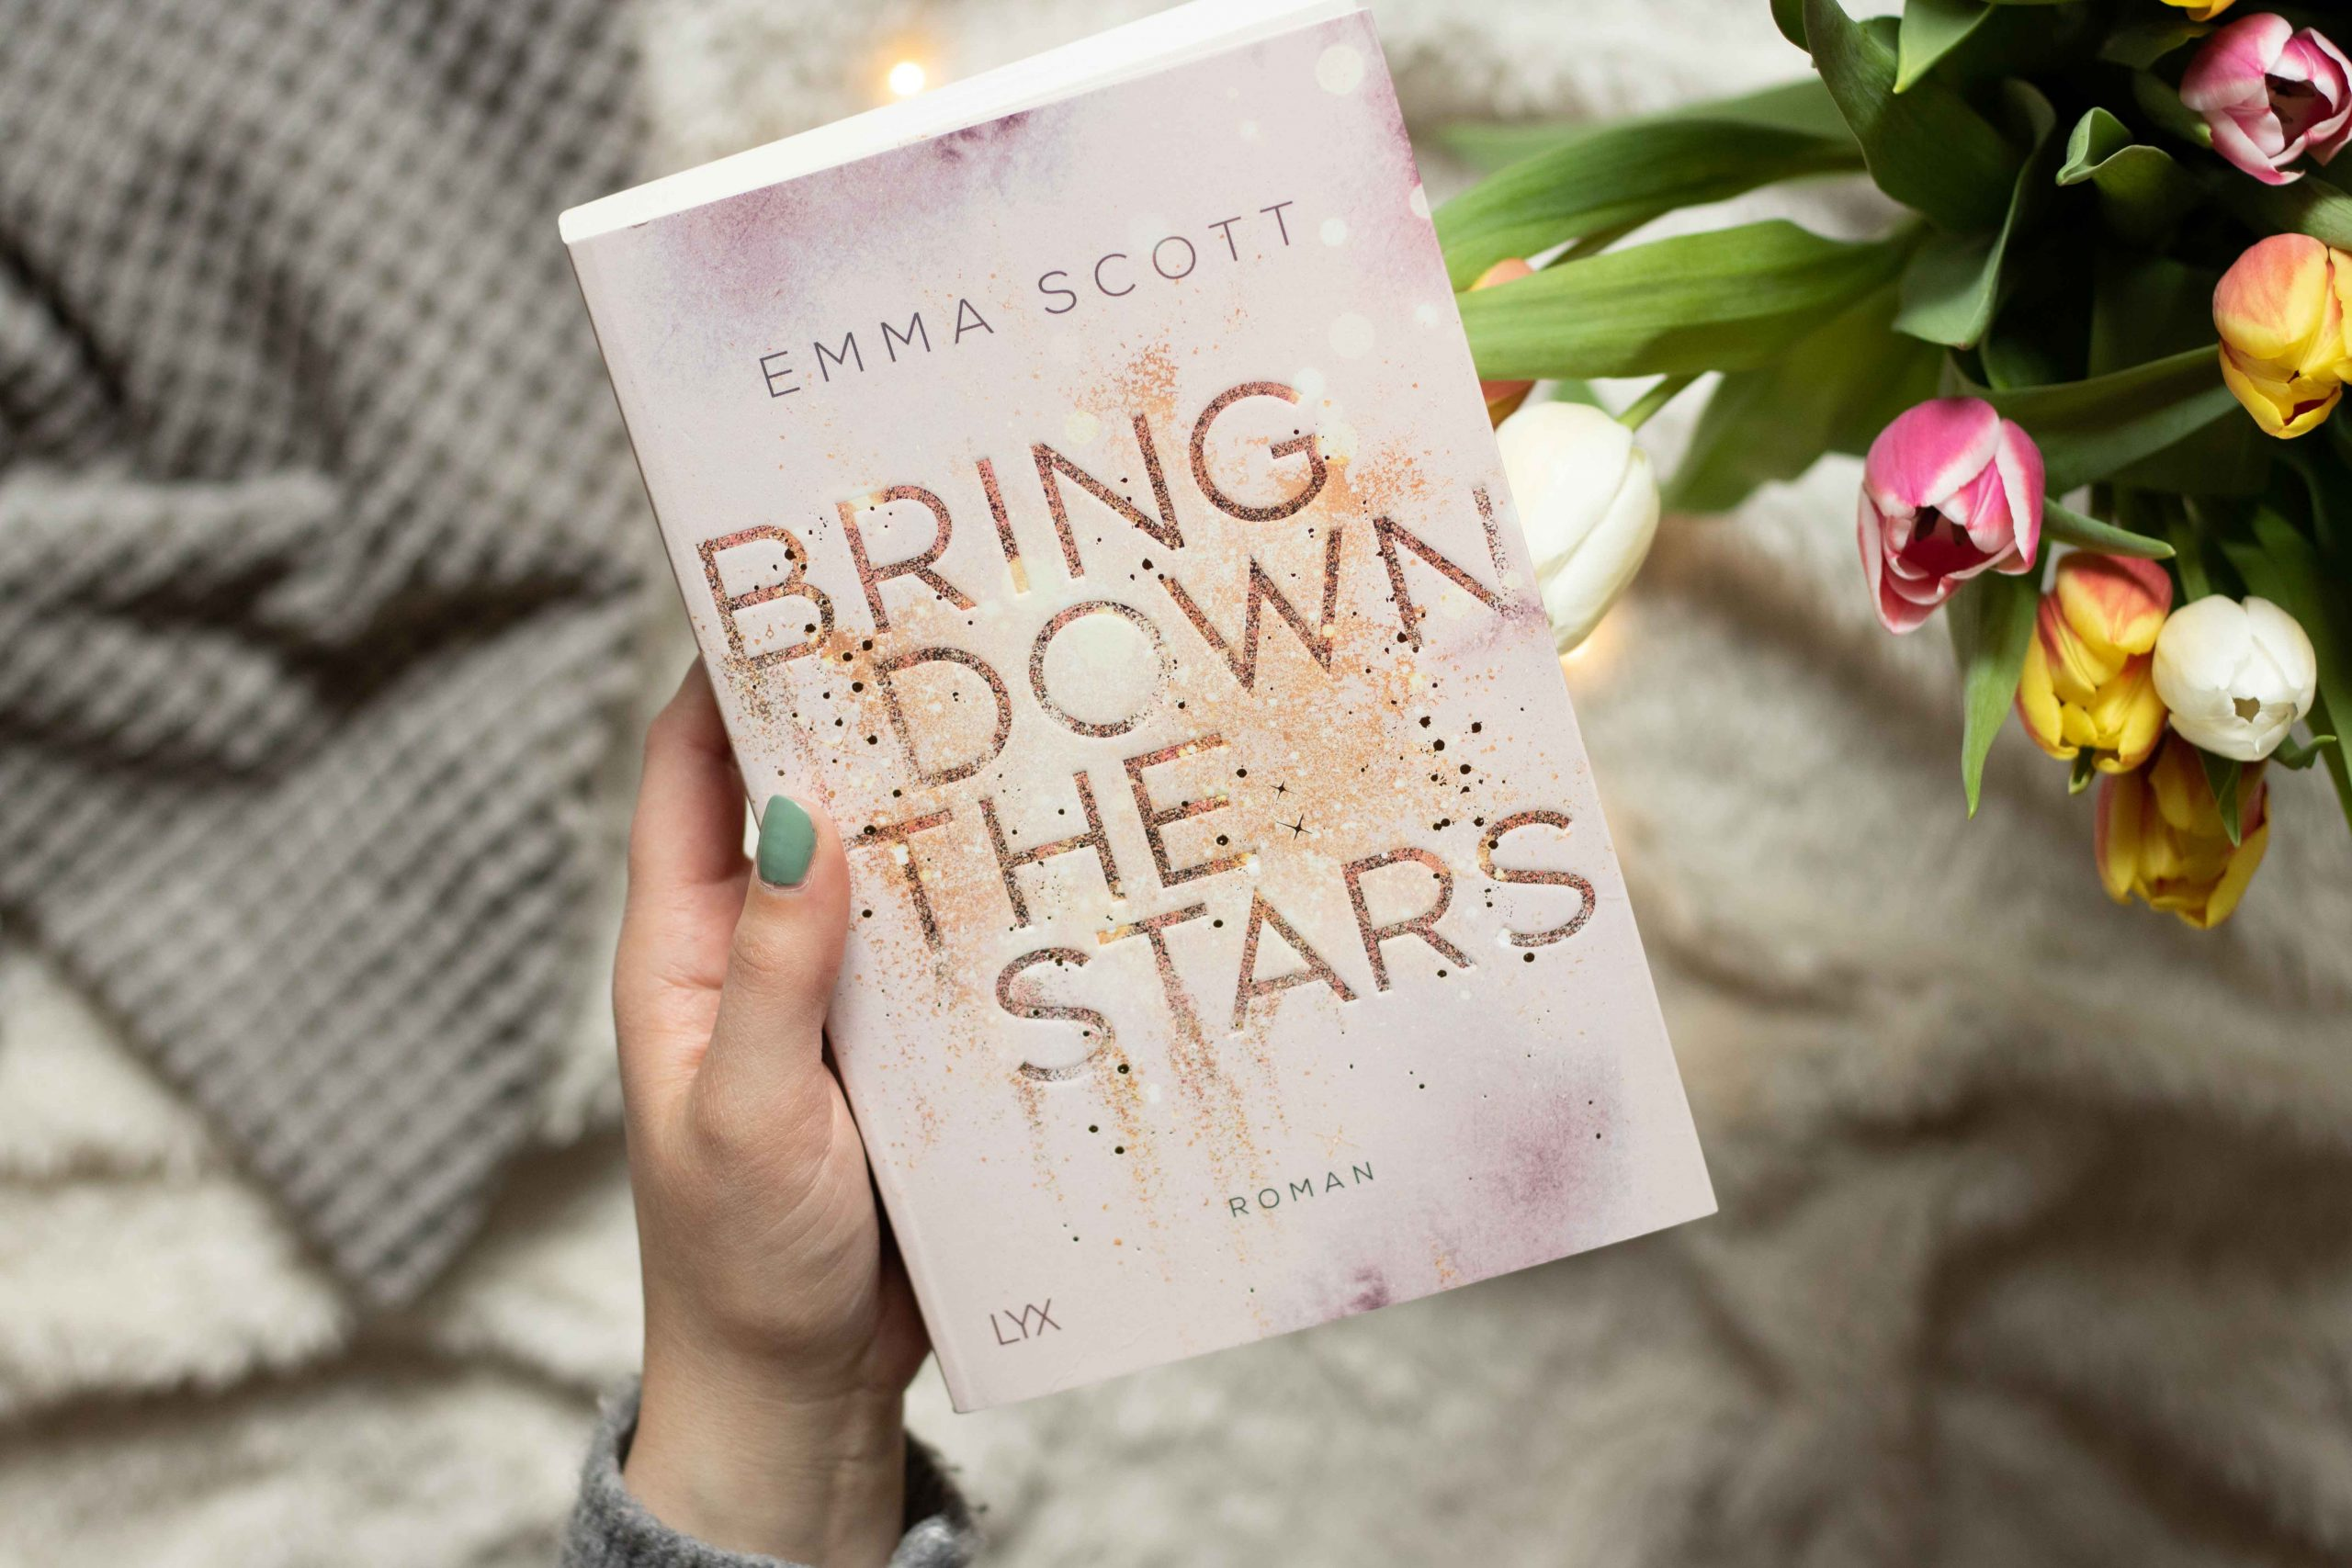 Bring down the Stars | Emma Scott